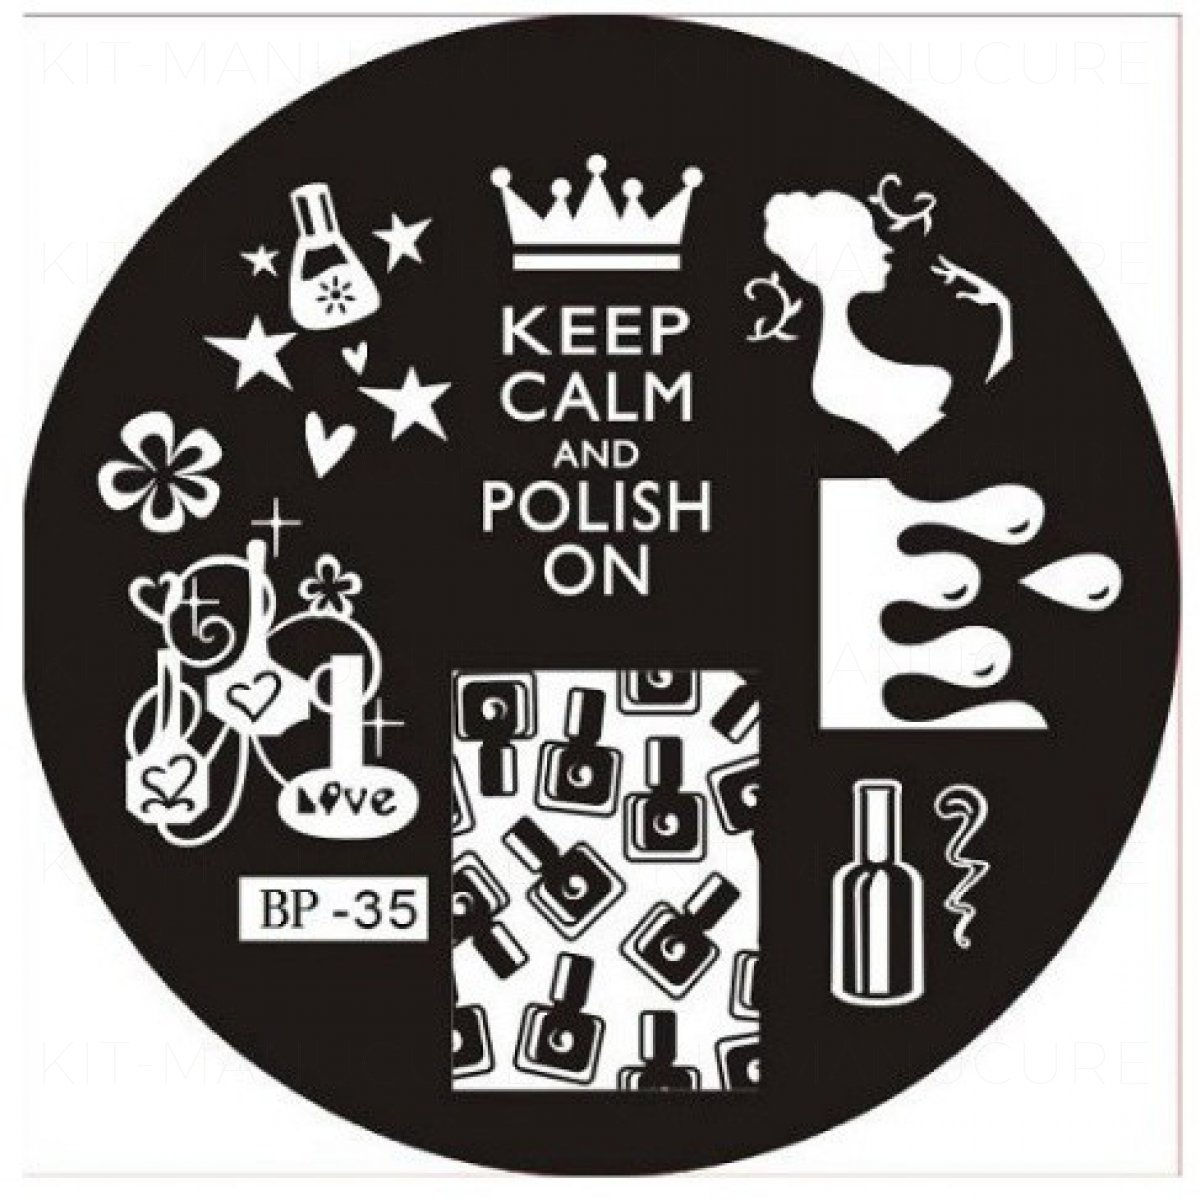 https://www.kit-manucure.com/1800-thickbox_default/plaque-de-stamping-keep-calm-and-polish-on-et-vernis-à-ongles.jpg